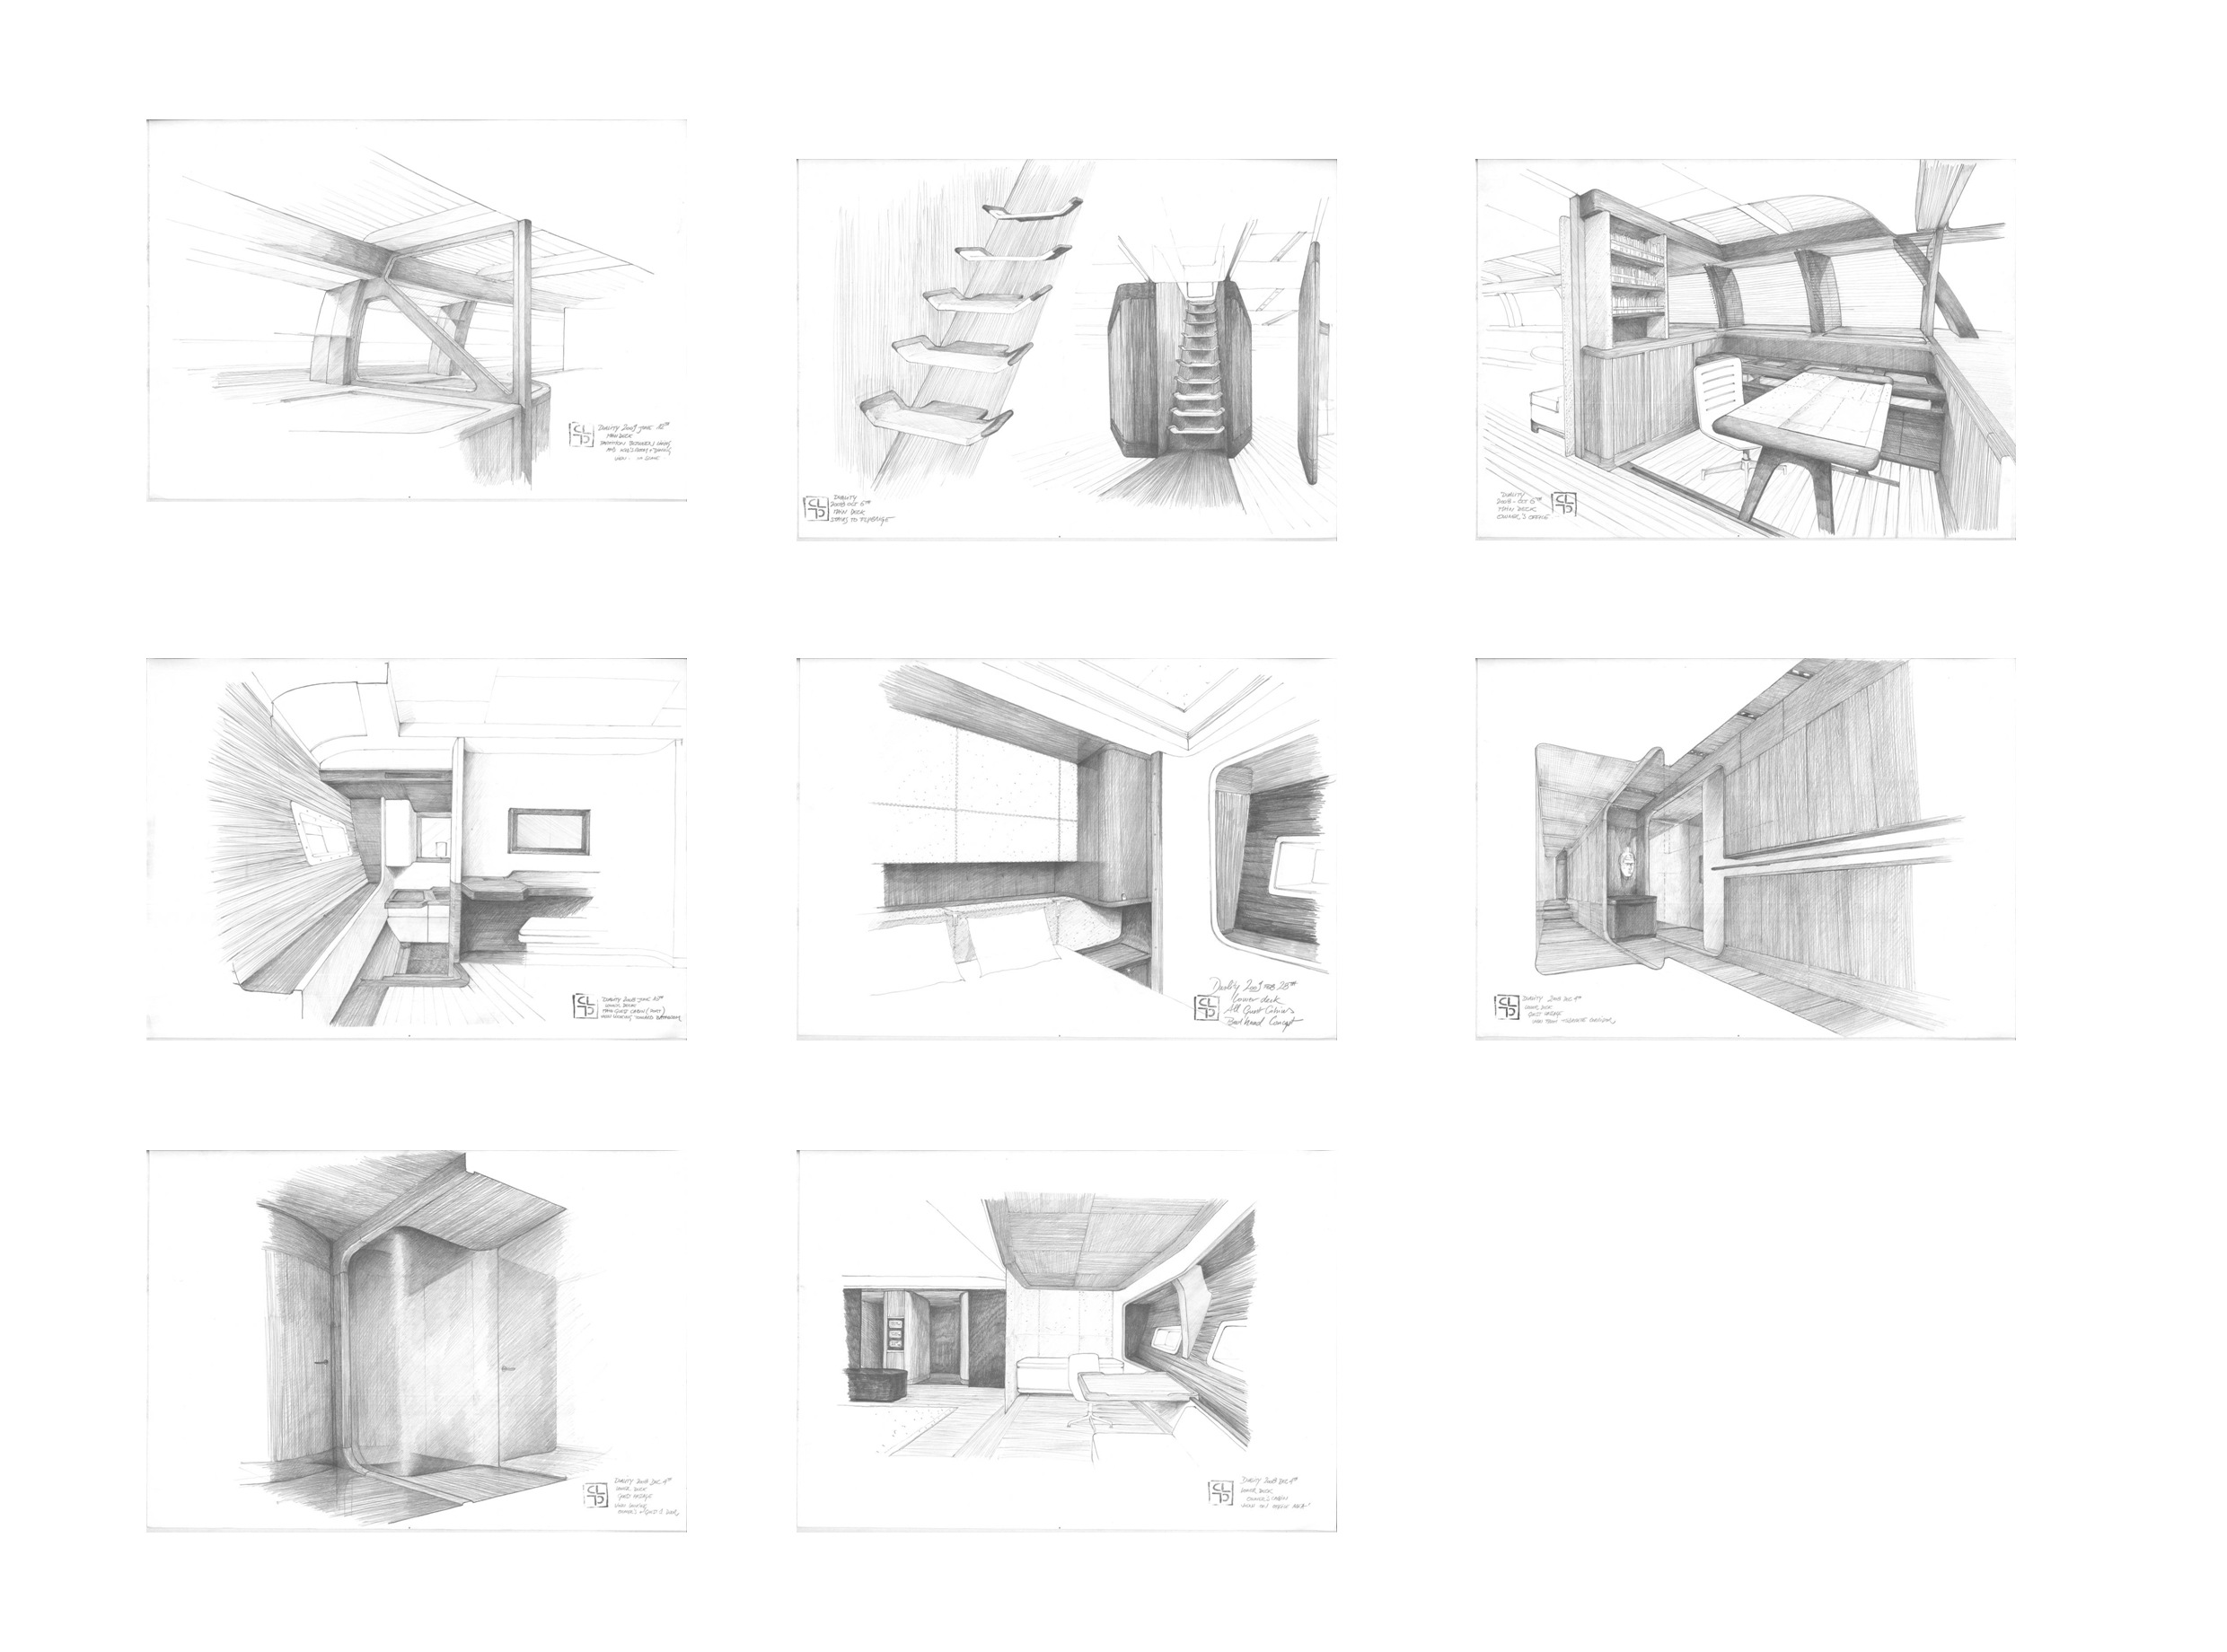 Christian liaigre drawings of the interior sailing yacht for Interior designs drawings